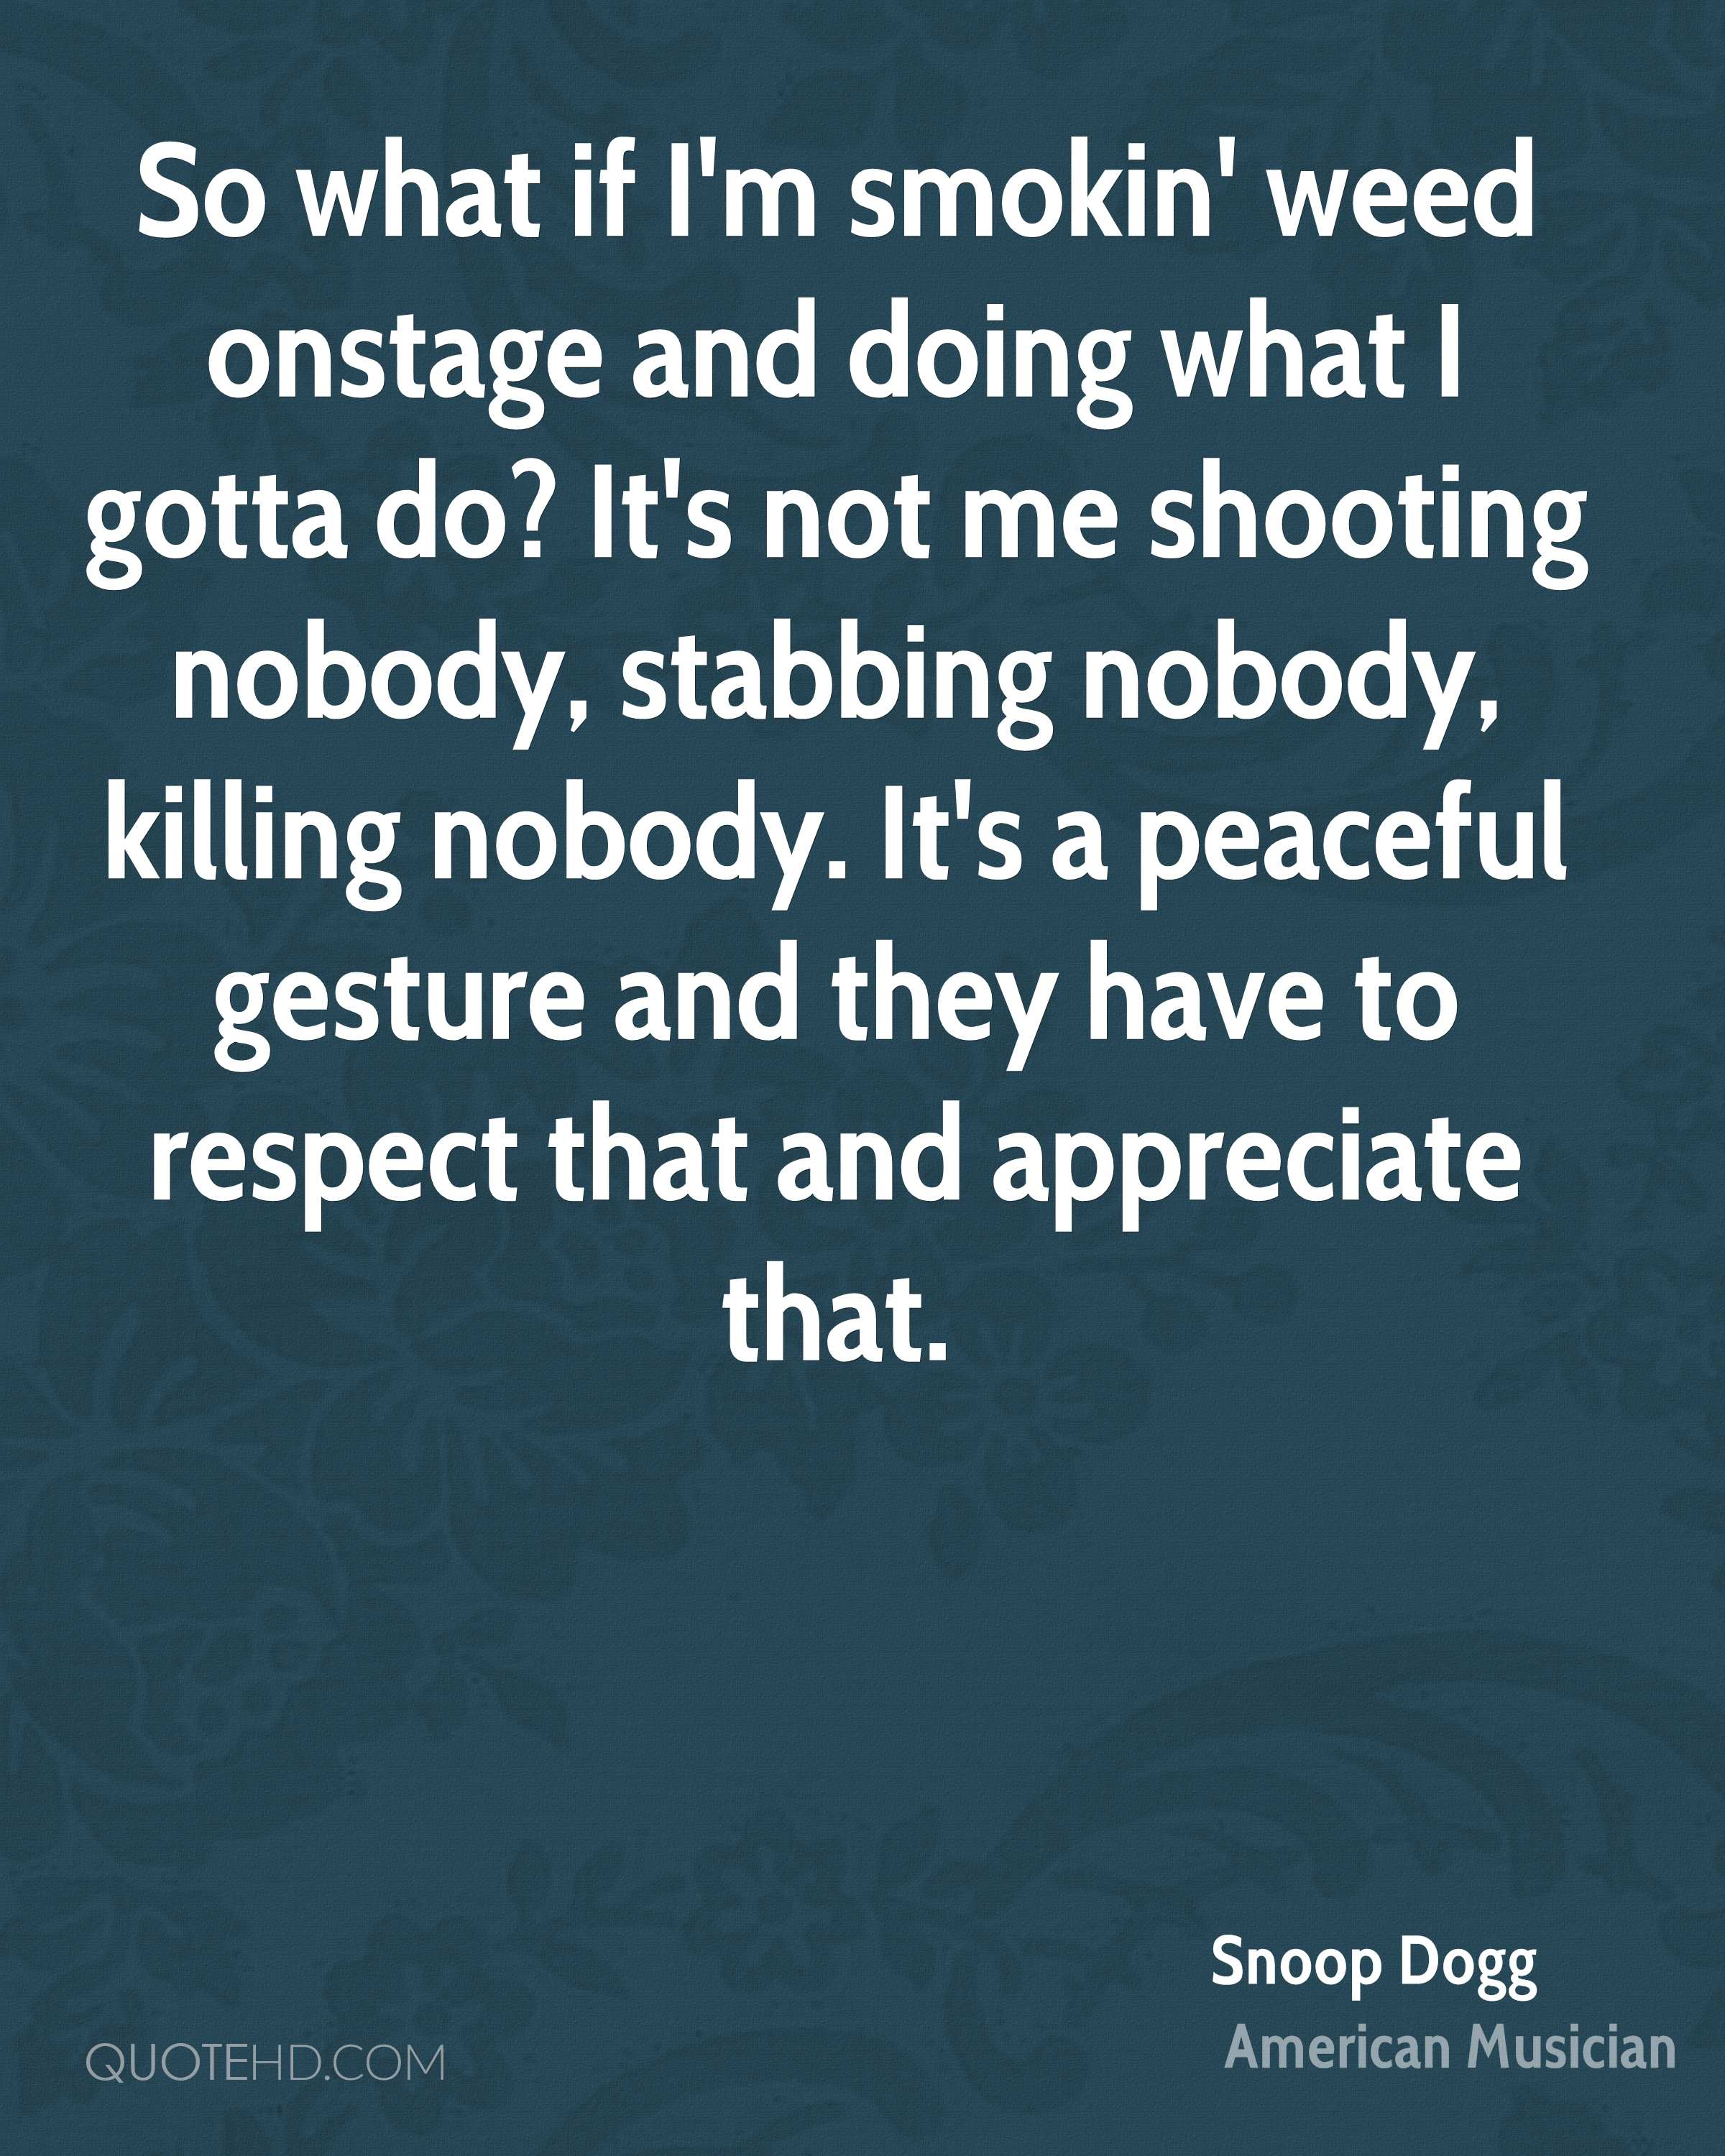 So what if I'm smokin' weed onstage and doing what I gotta do? It's not me shooting nobody, stabbing nobody, killing nobody. It's a peaceful gesture and they have to respect that and appreciate that.